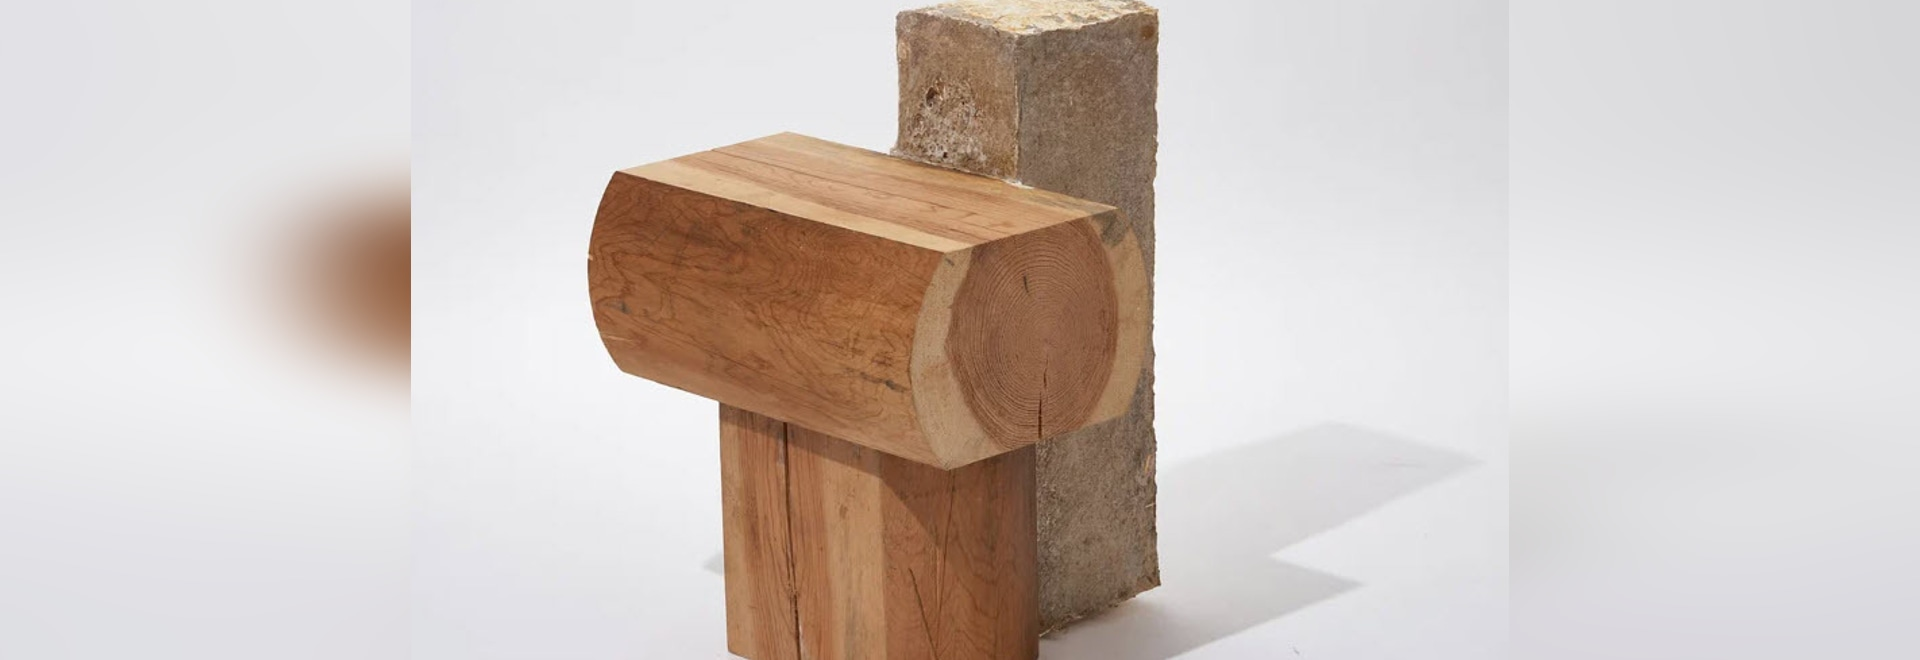 Kyunchul Kim combines old construction wood with mycelium to create stool furniture